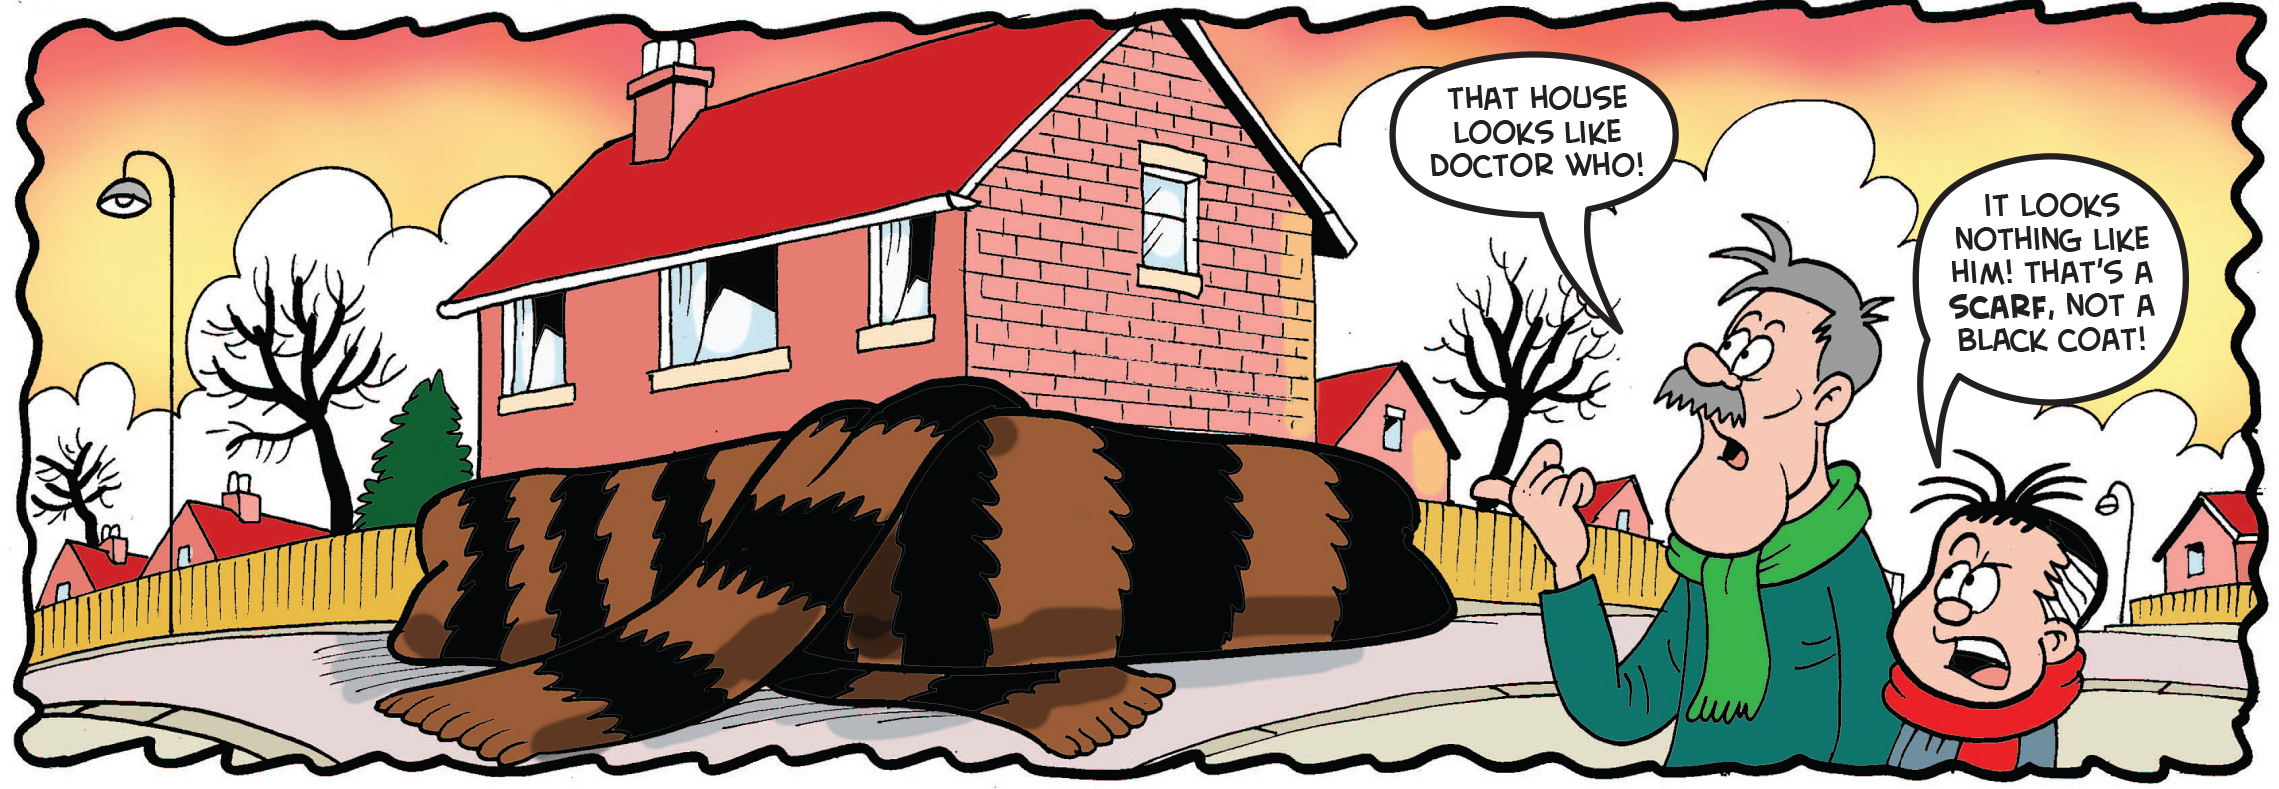 The house is wrapped in a mammoth-hair scarf